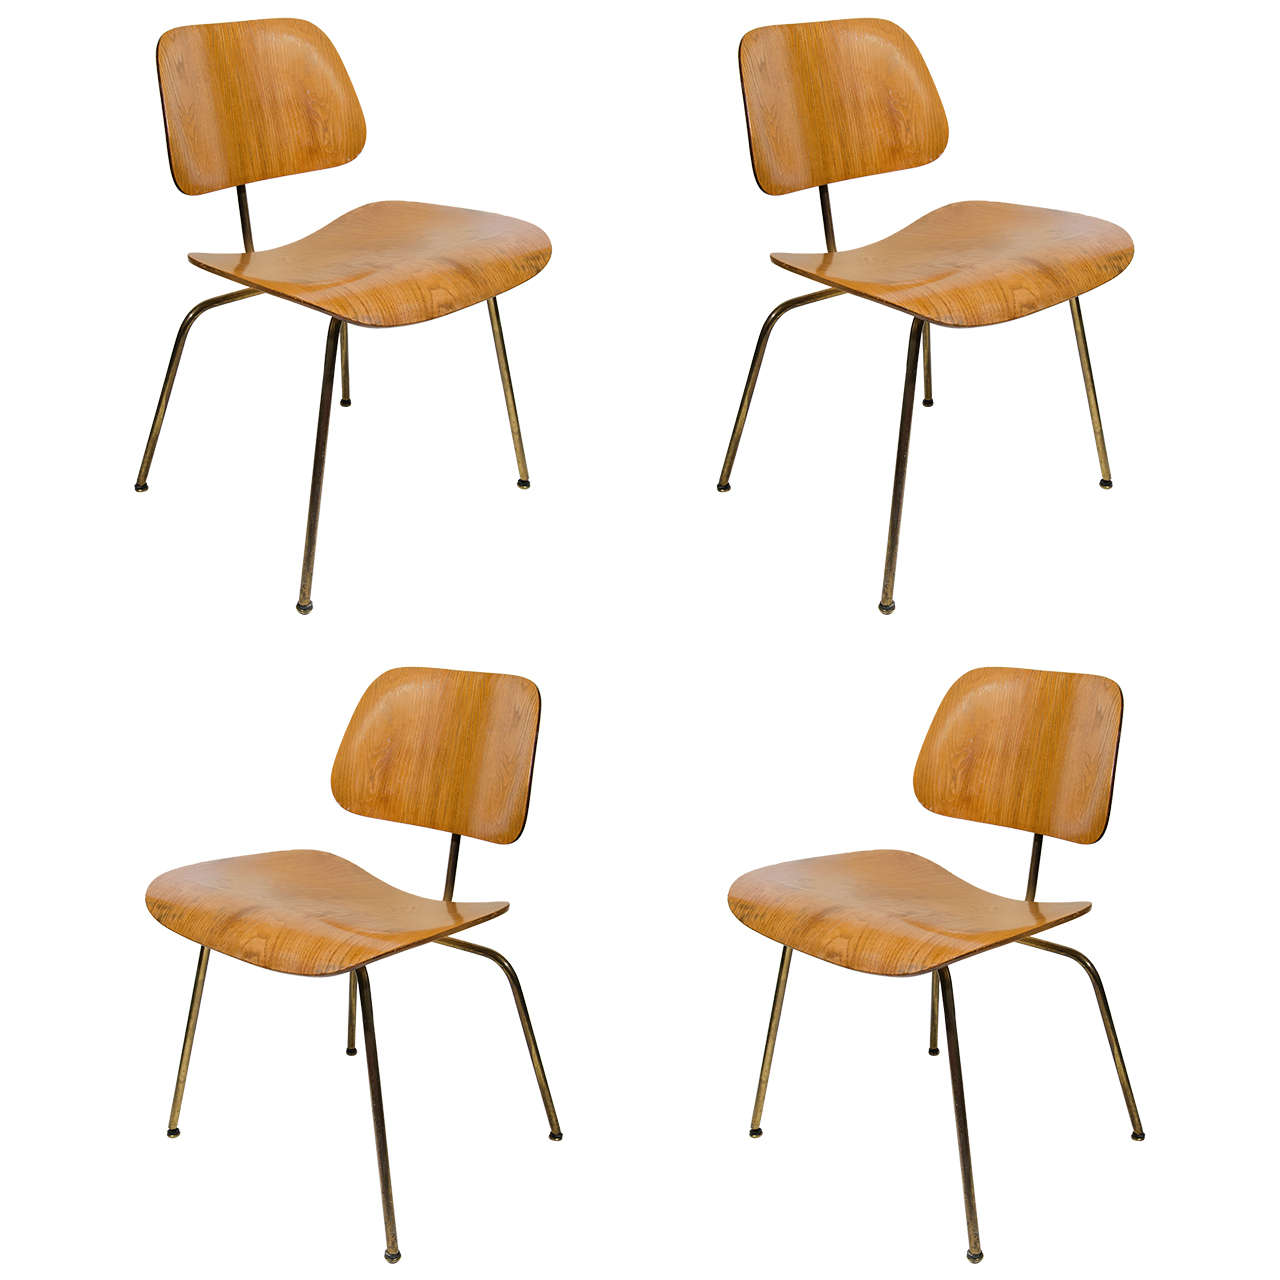 set of four iconic modernist bentwood chairs designed by eames for herman miller 1